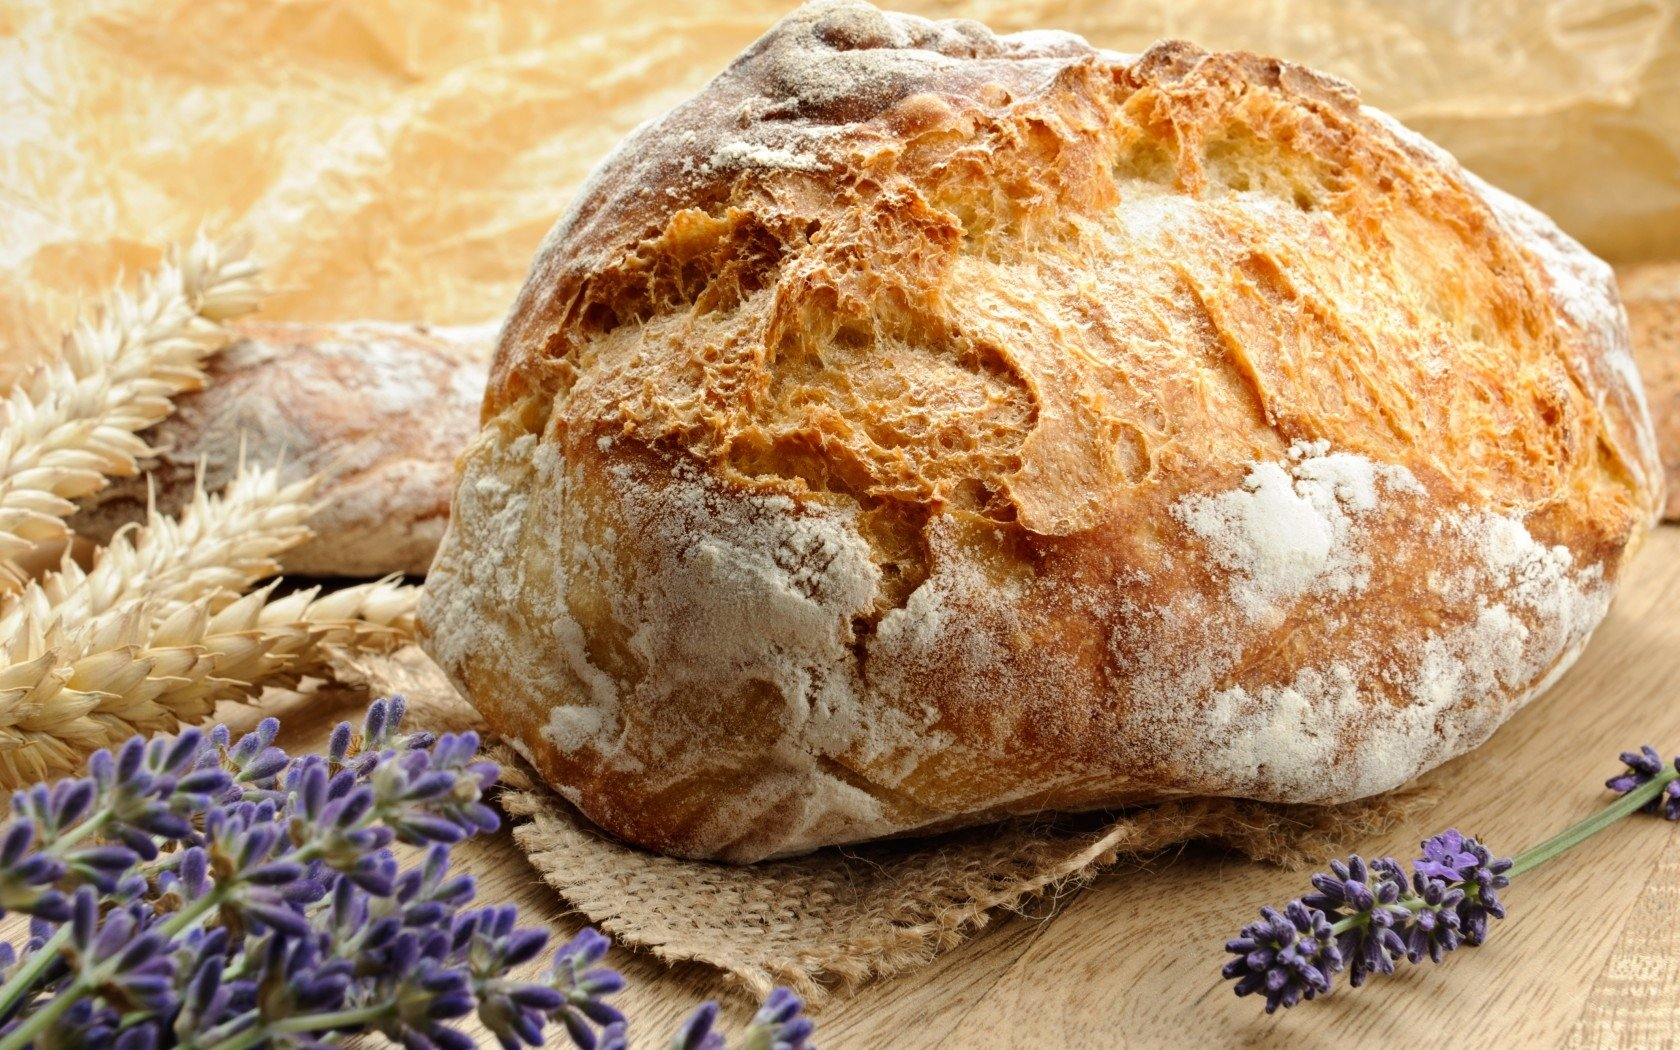 Bread Wallpaper And Background Image  1680x1050 ID425330